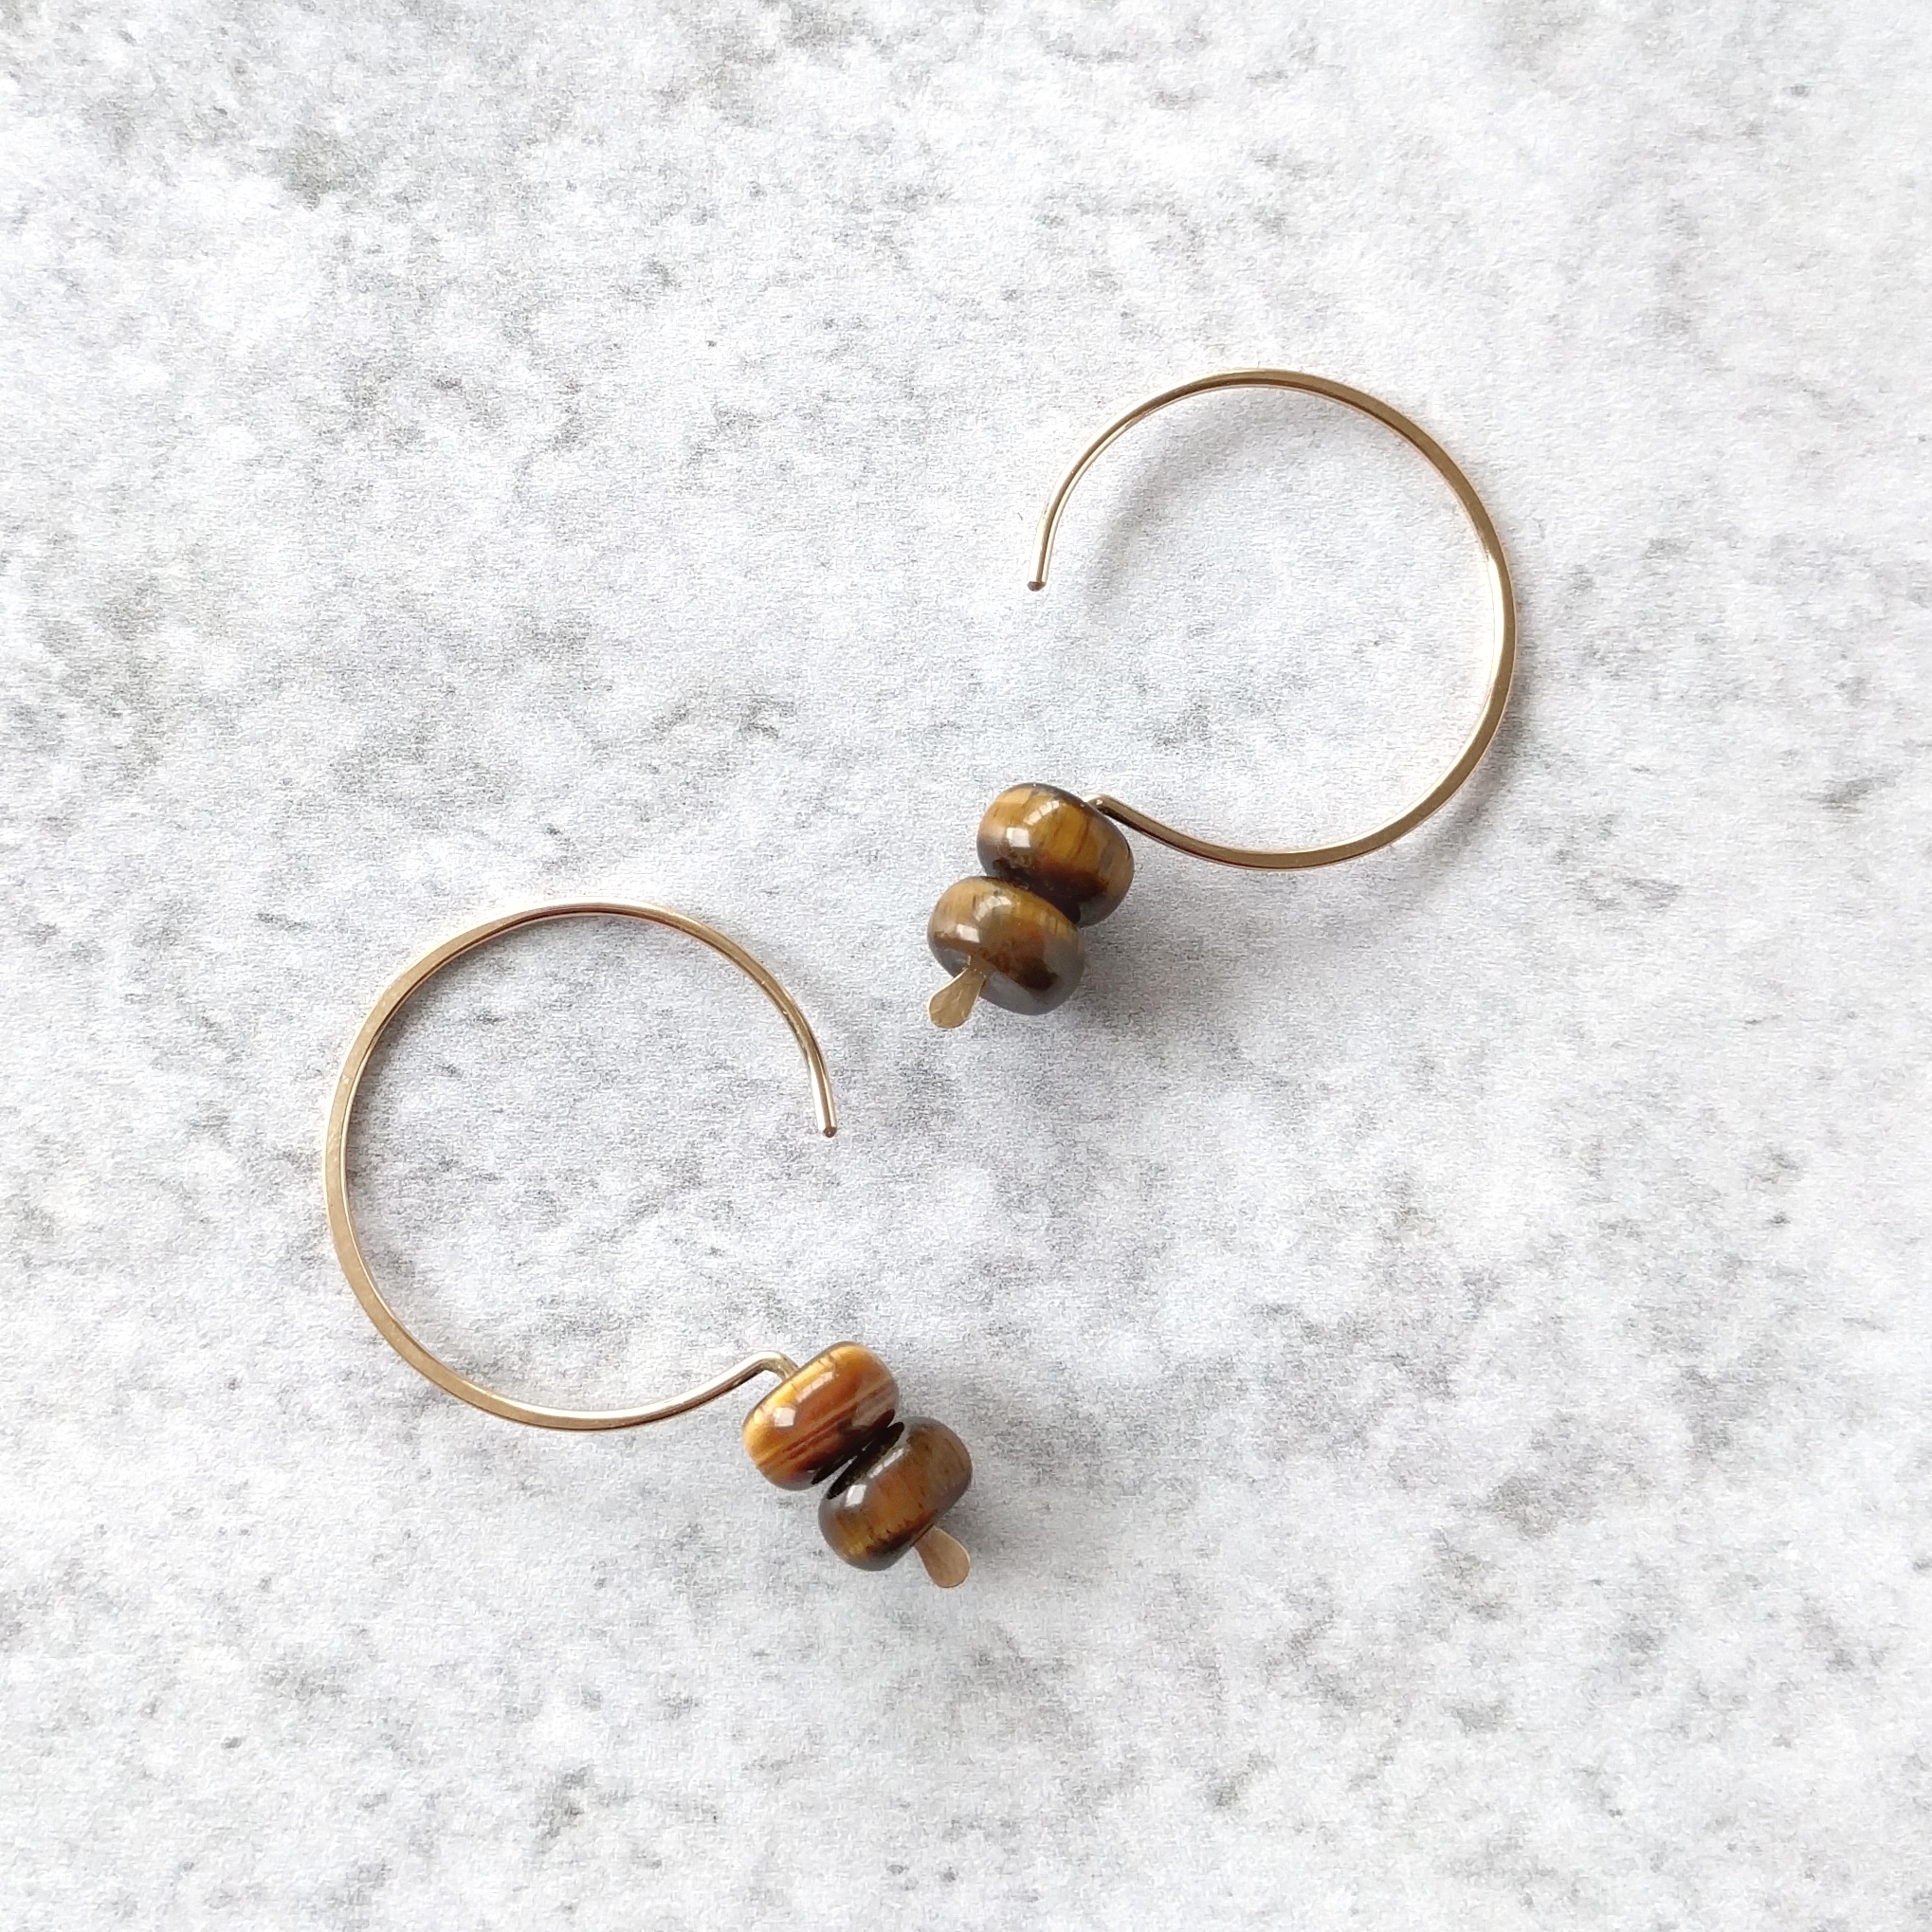 14k Gold Filled Hook Earrings w_ Tiger Eye